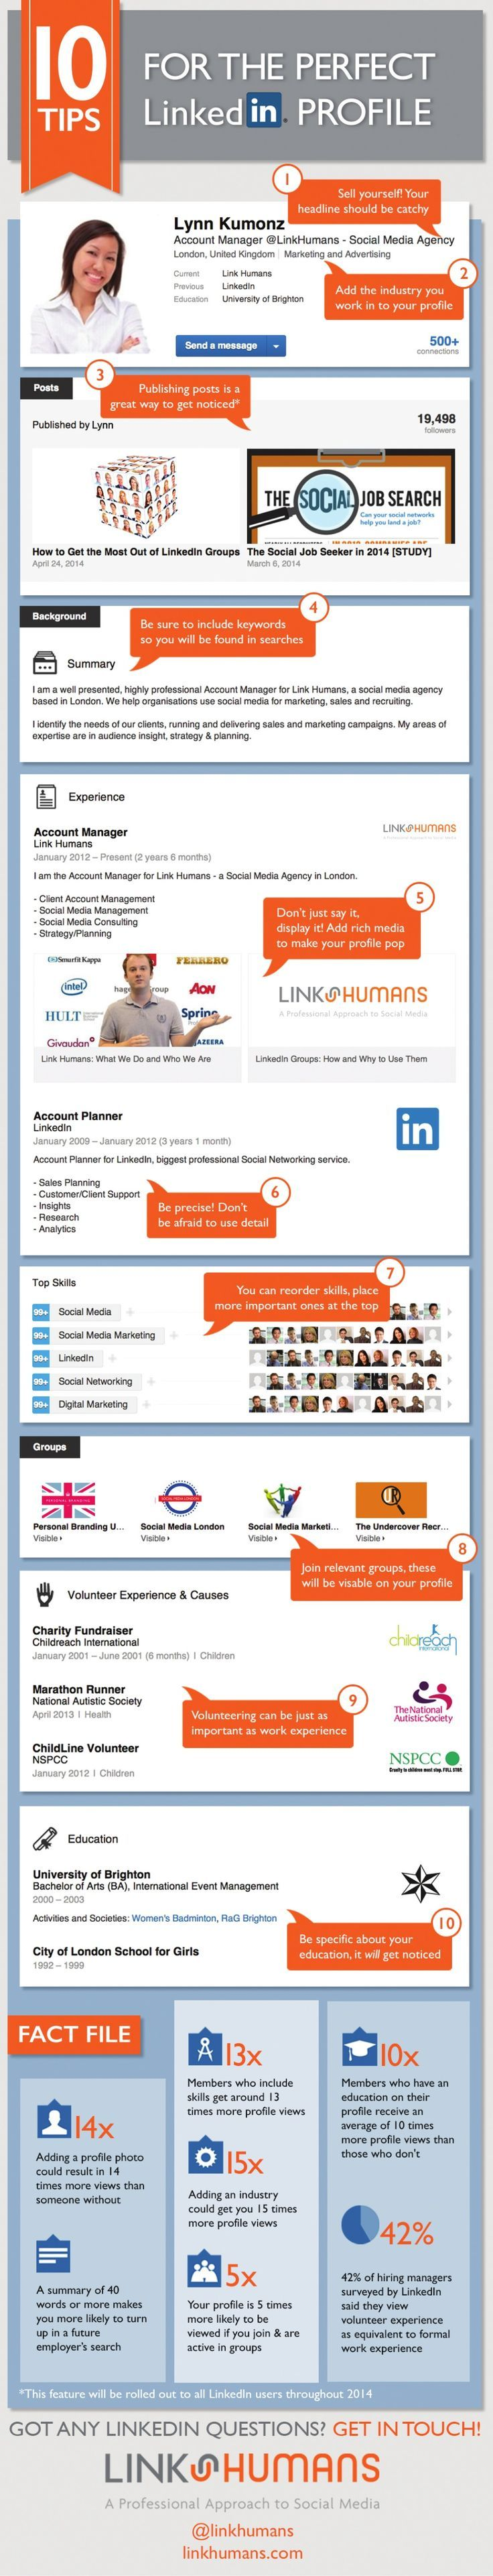 LinkedIn Infografik | Tipps für Dein LinkedIn Profil | Tips for the Perfect LinkedIn Profile career infographic